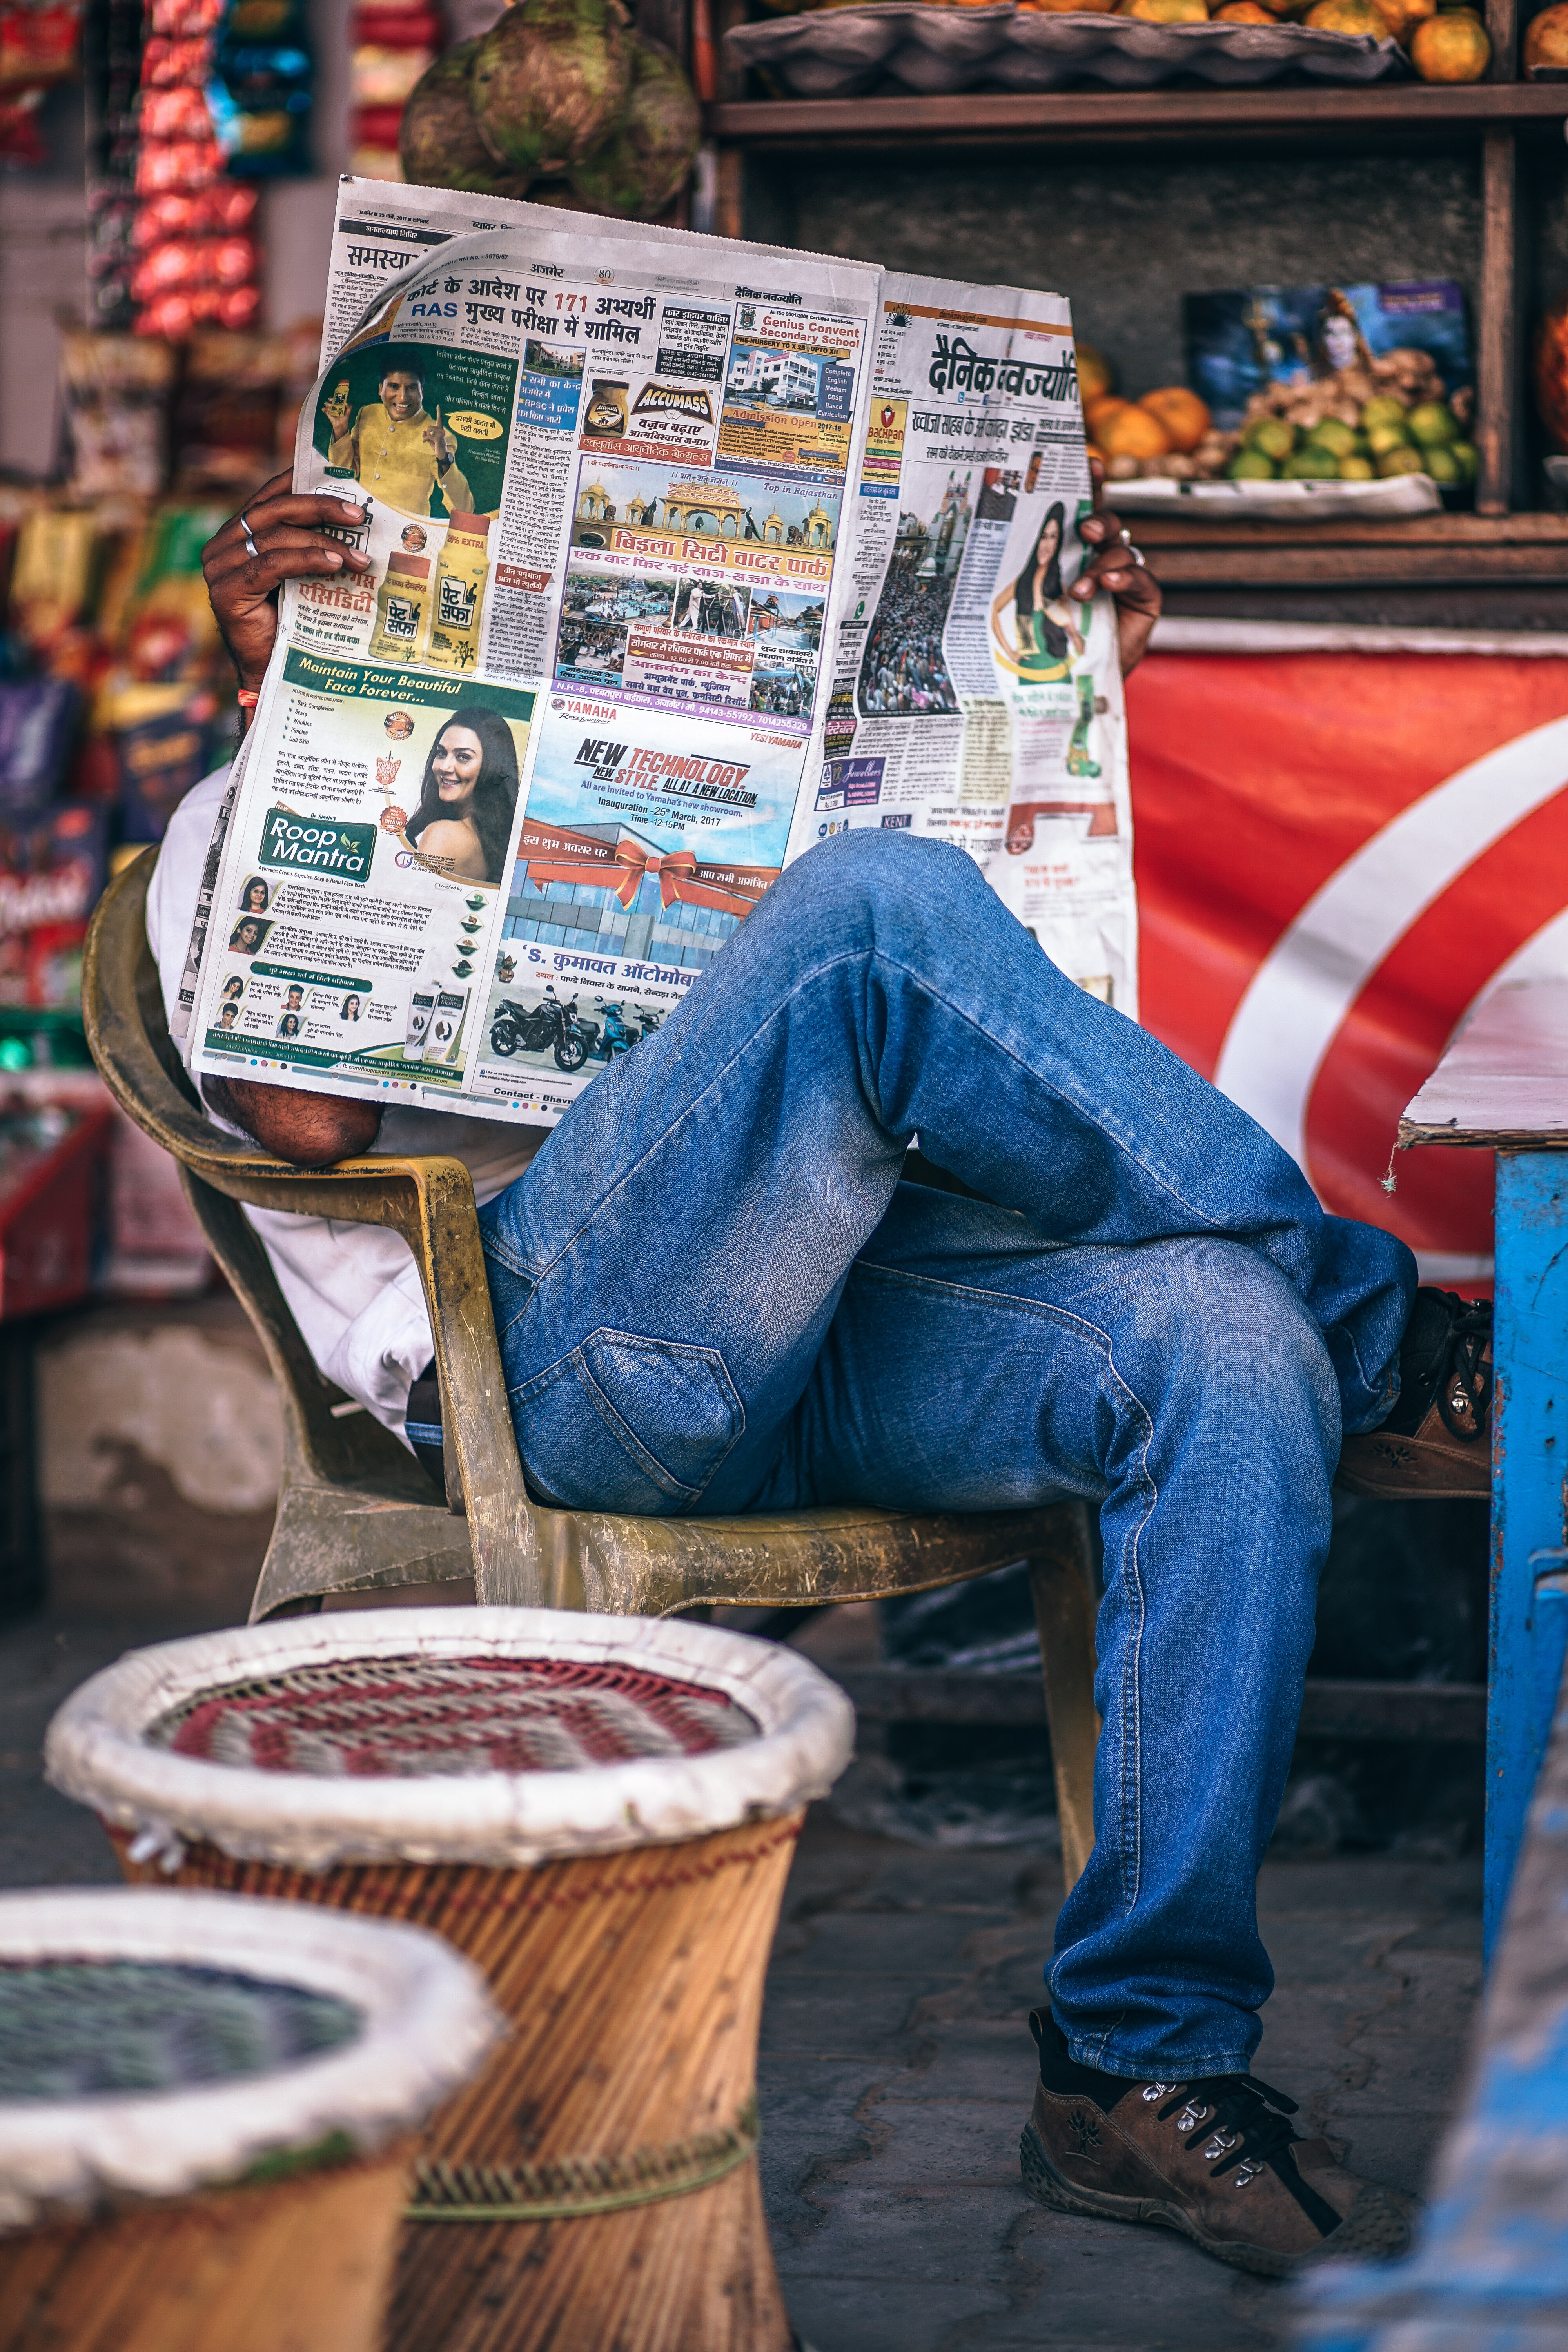 Man sitting on plastic armchair reading newspaper photo